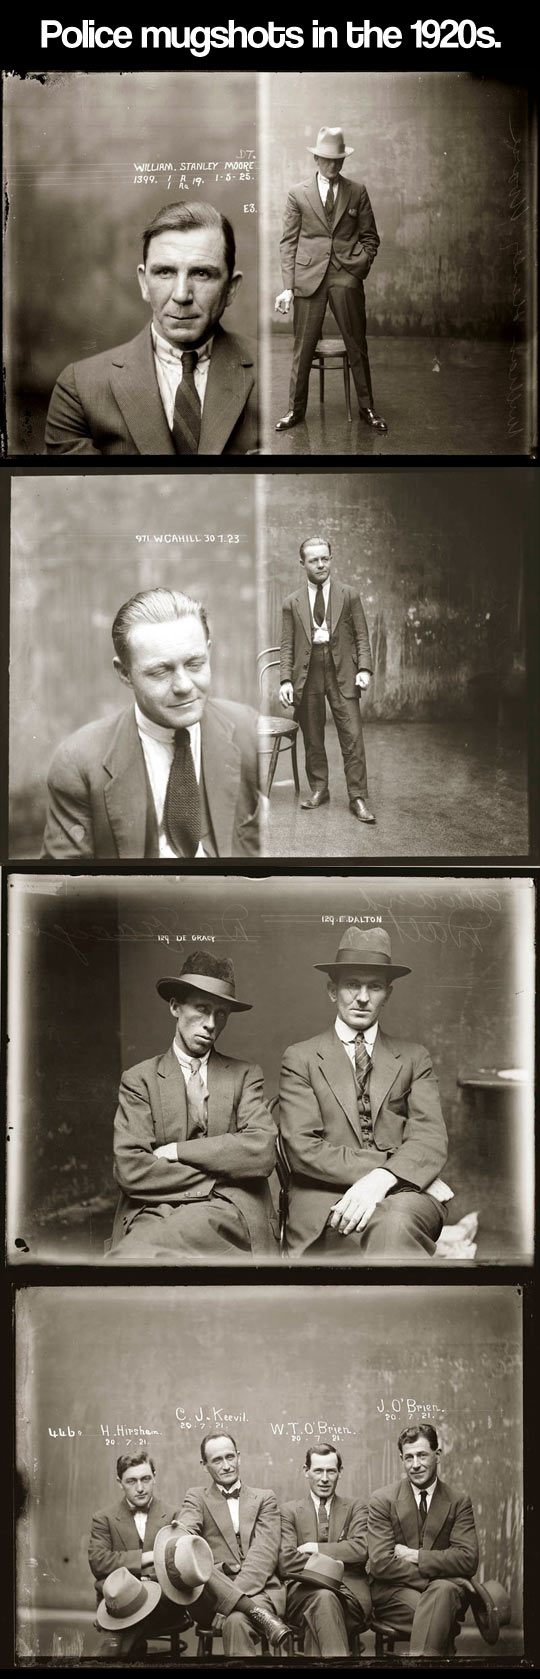 Police mugshots in the 1920s...